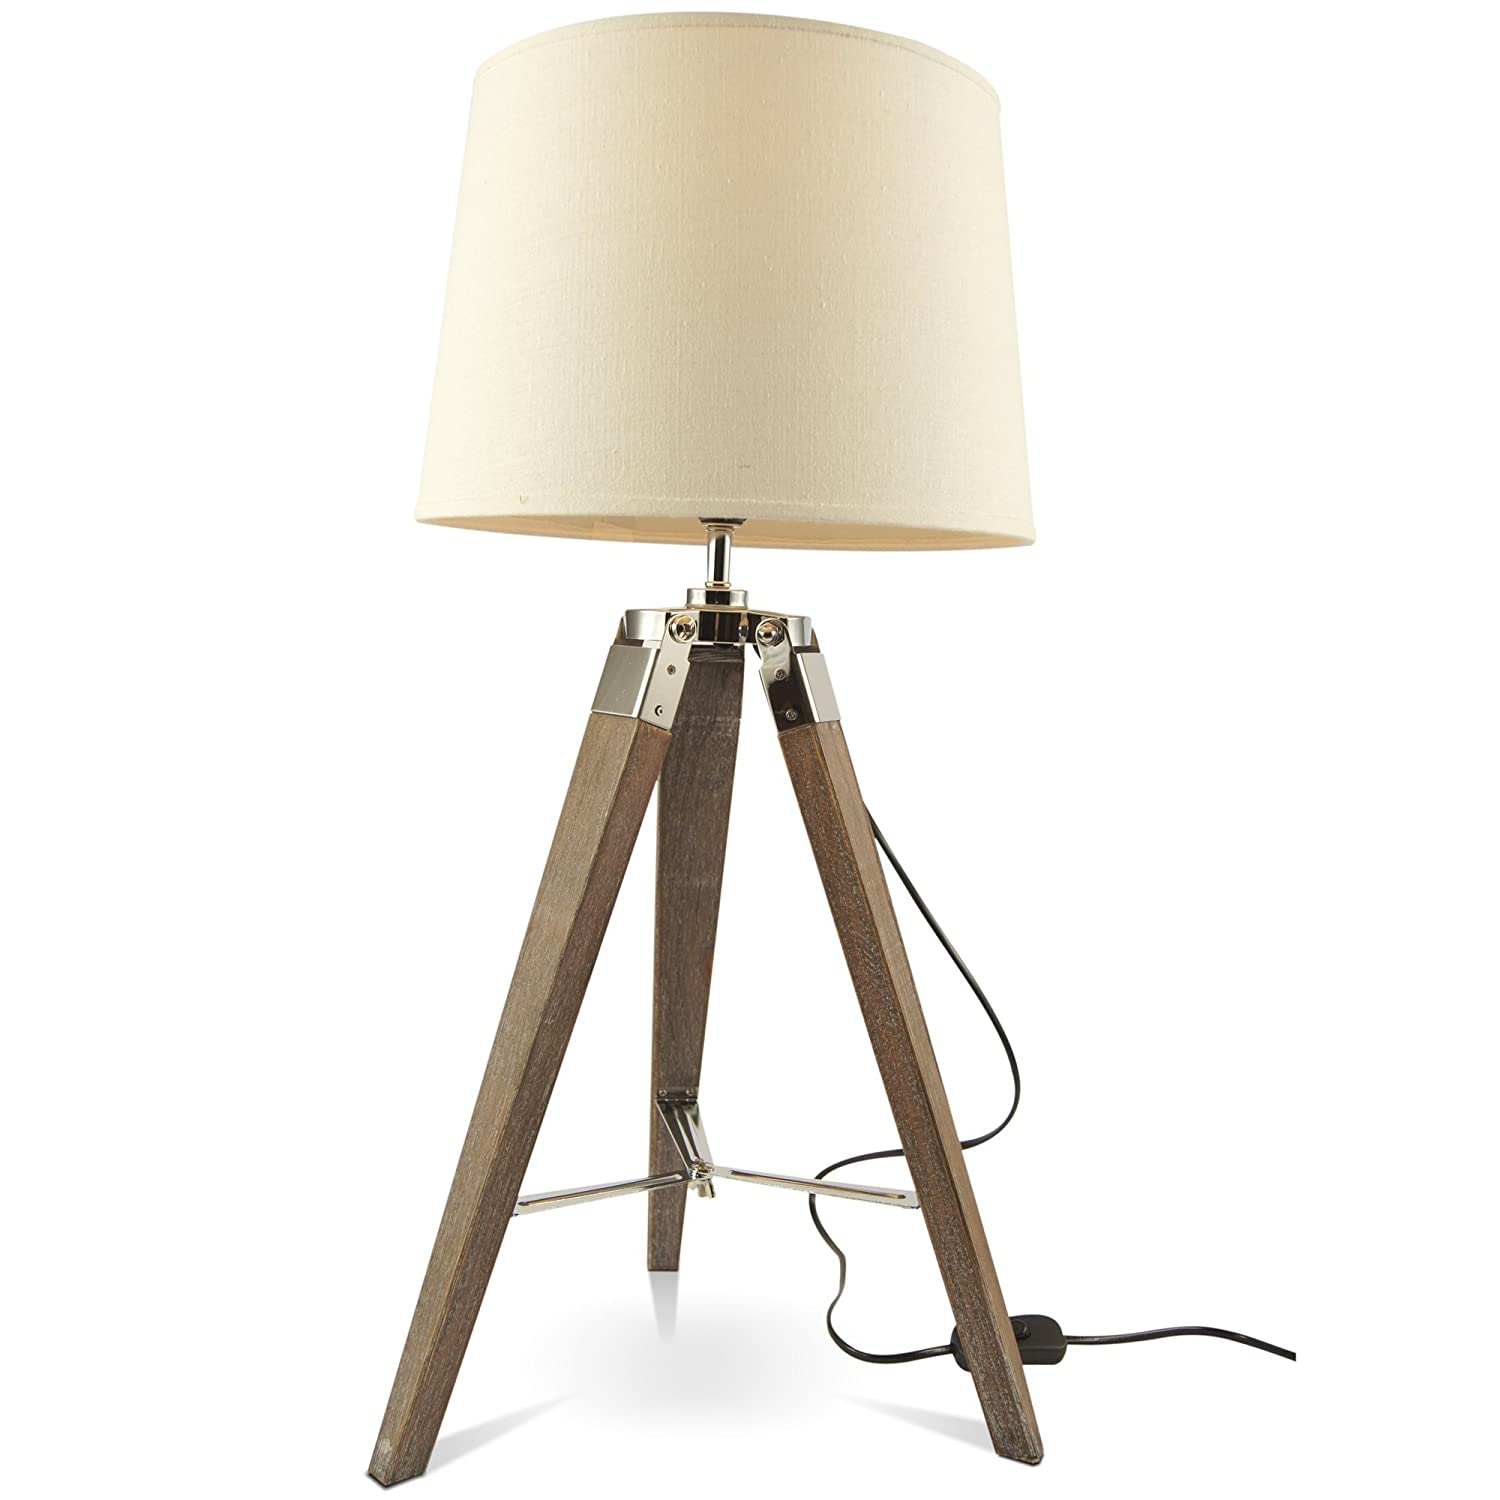 mojo stehleuchte tischleuchte tripod stehlampe tischlampe. Black Bedroom Furniture Sets. Home Design Ideas